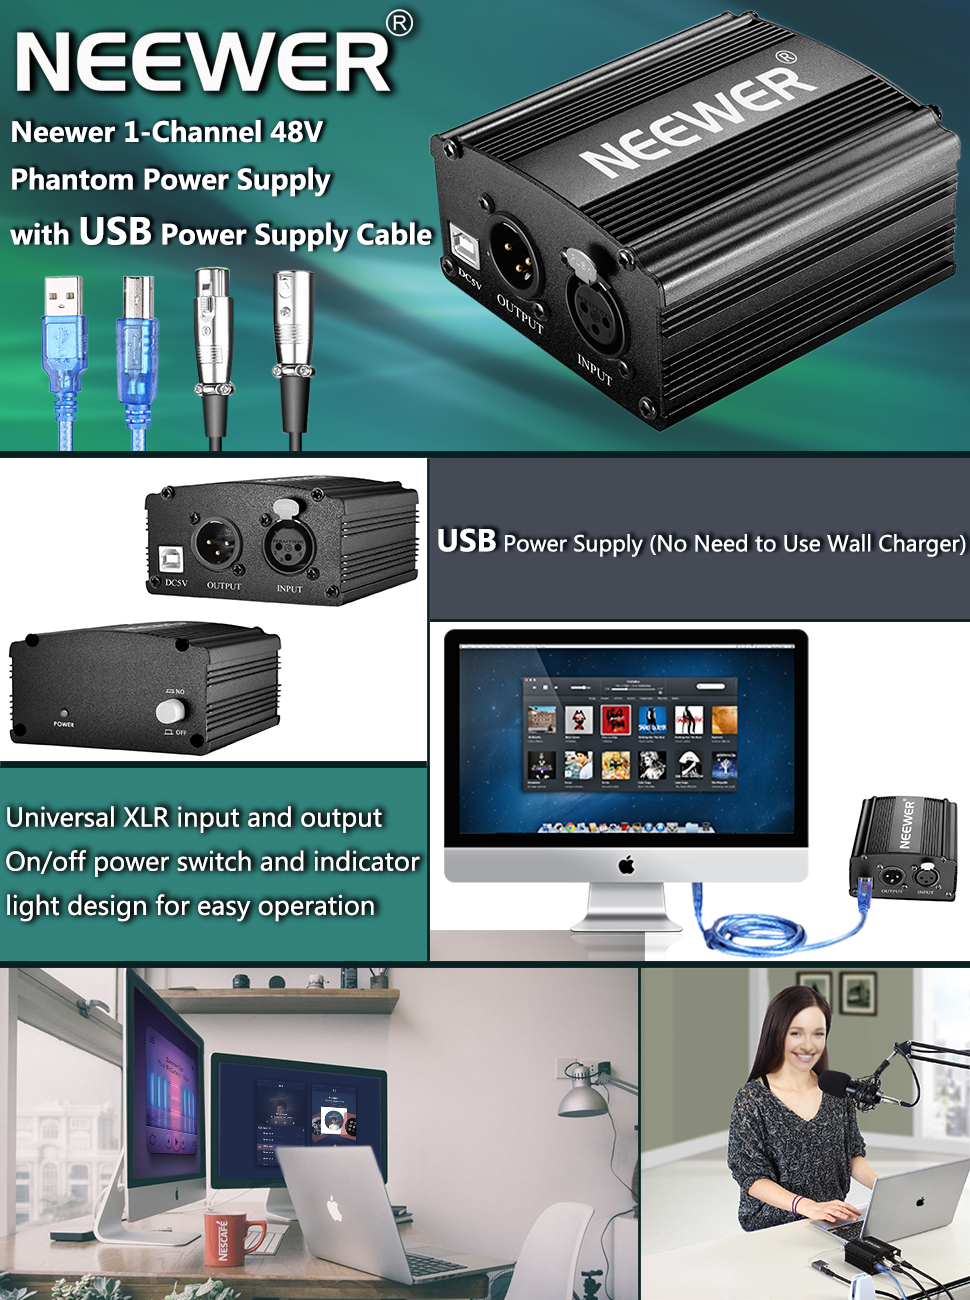 Neewer 1-Channel 48V Phantom Power Supply with 5 feet USB Cable, BONUS+XLR 3 Pin Microphone Cable for Any Condenser Microphone Music Recording Equipment 40092007